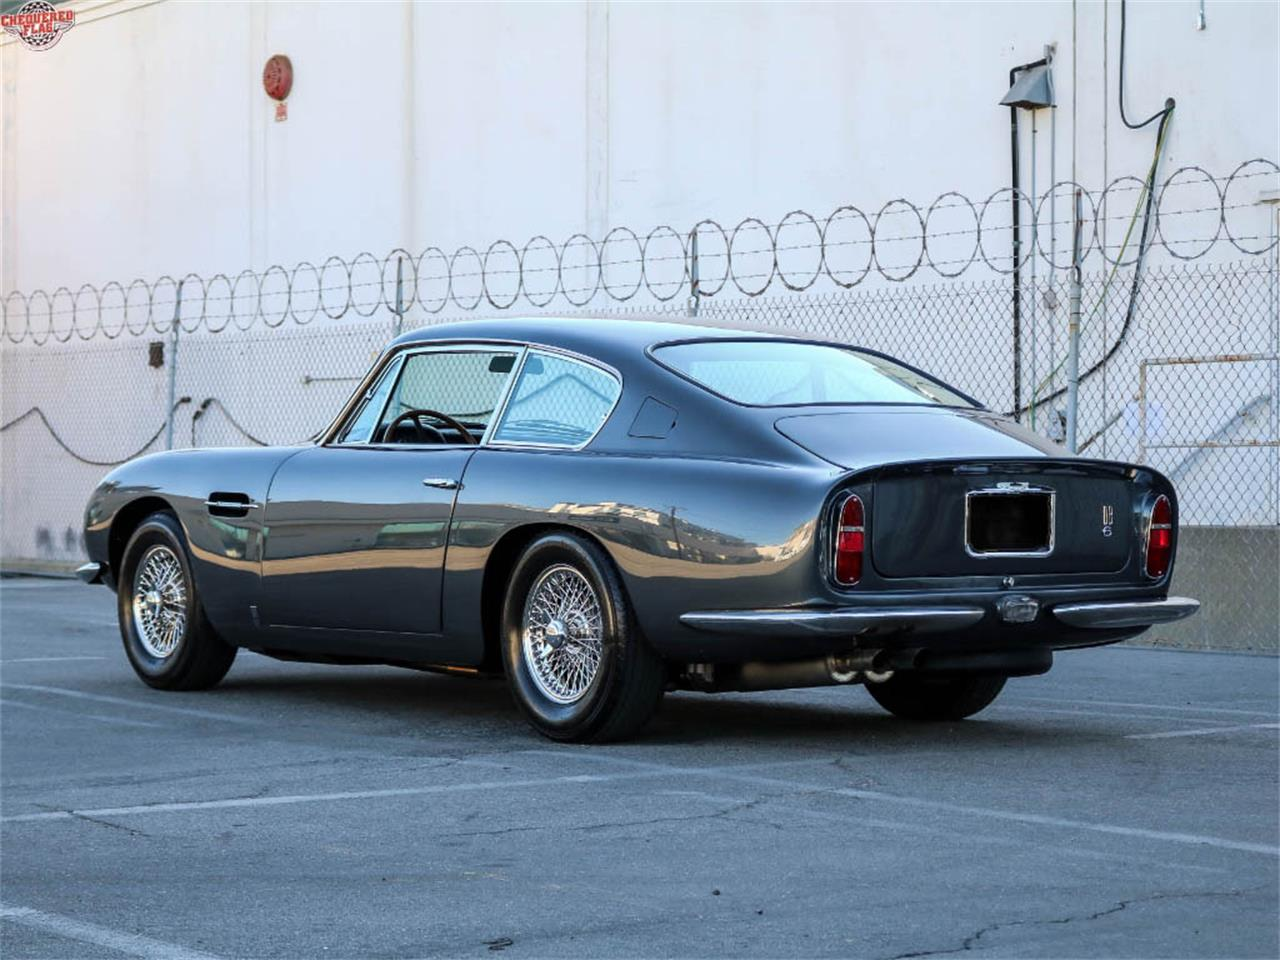 Large Picture of Classic 1967 DB6 located in California - $425,000.00 Offered by Chequered Flag International - MAMK